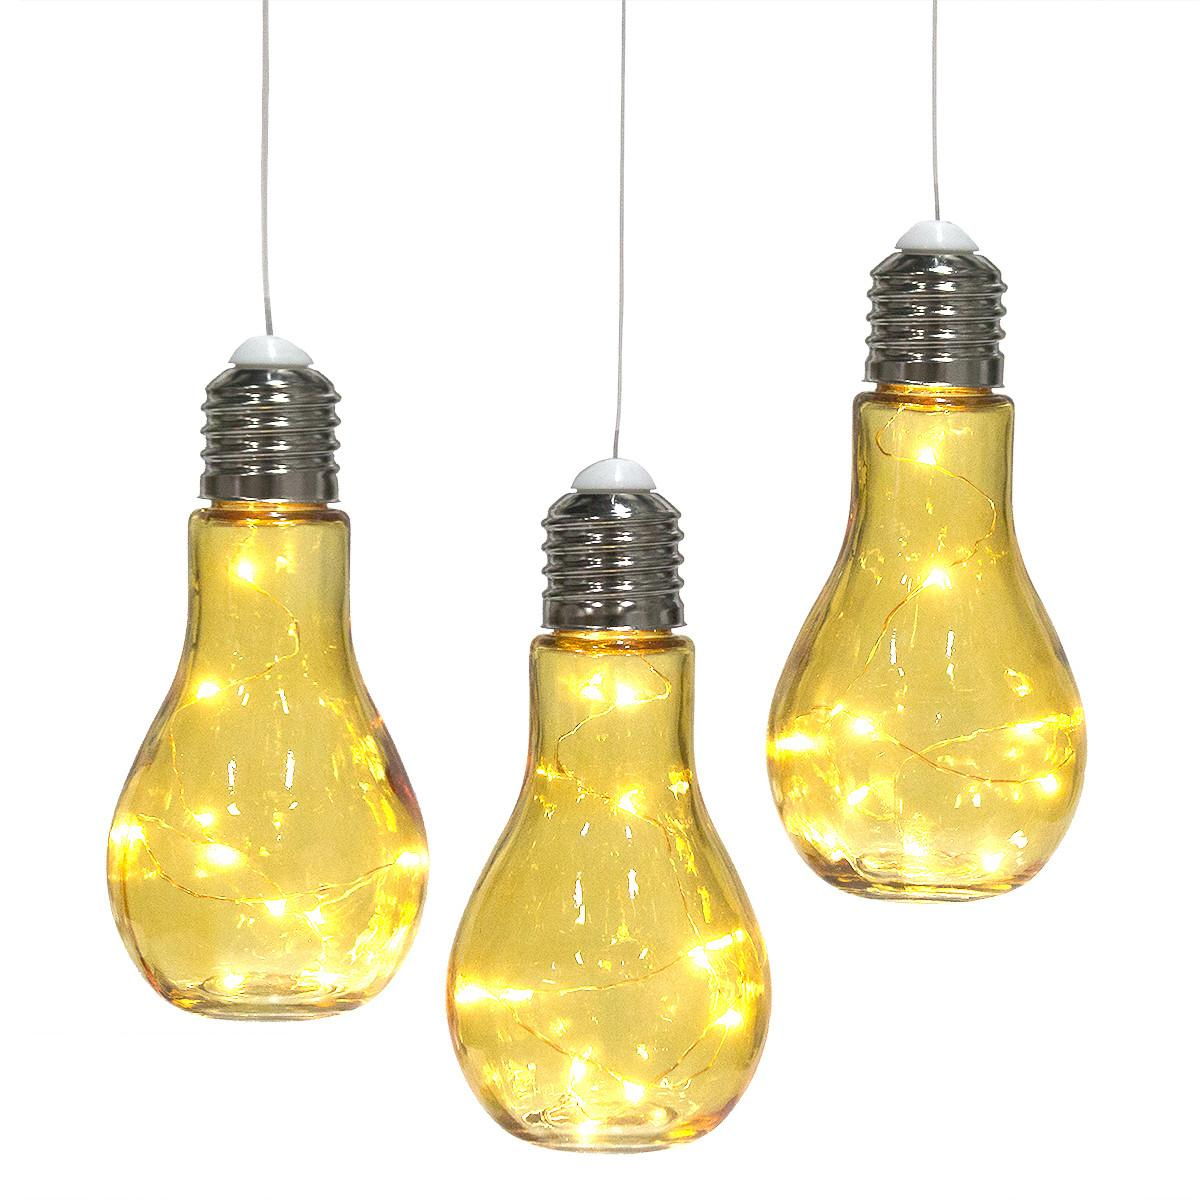 Hanging Bulb Shaped Glass Lanterns Outdoor Pendant Lamps